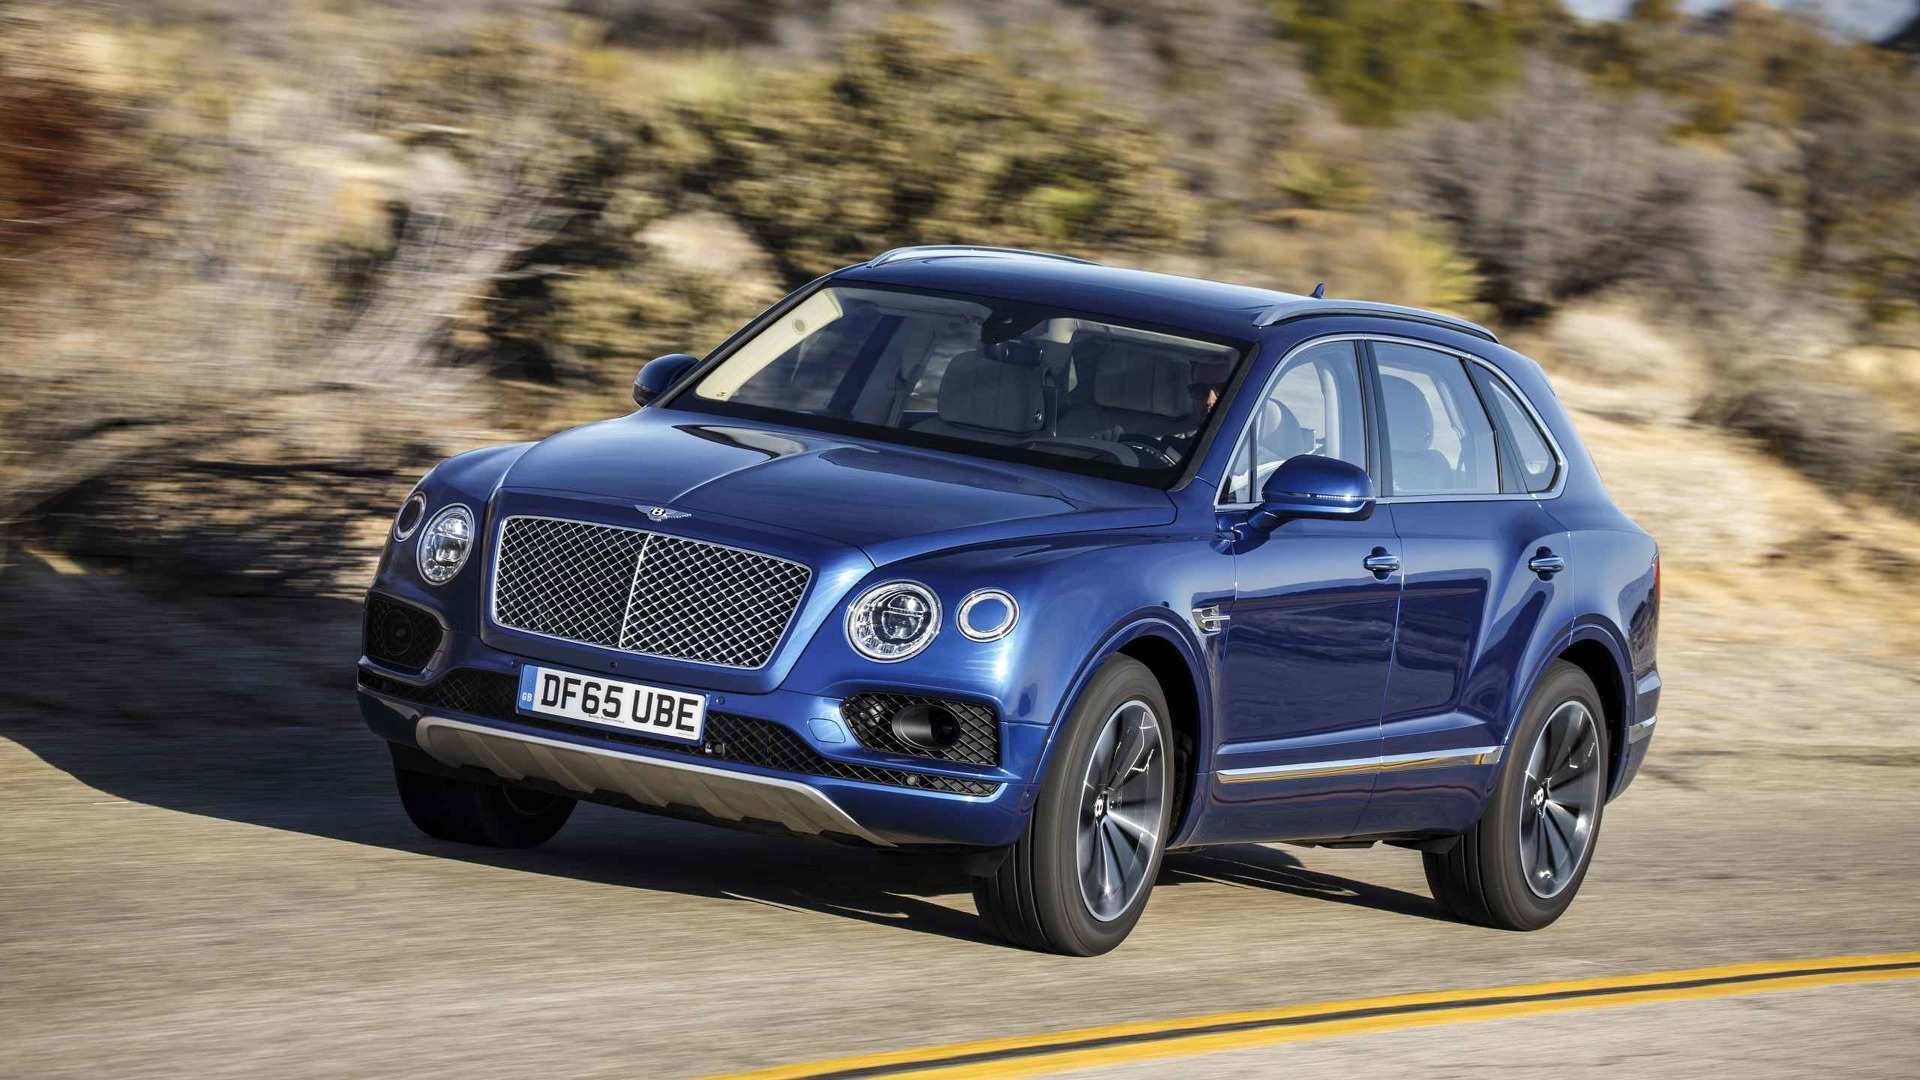 29 Gallery of 2020 Bentley Suv New Concept with 2020 Bentley Suv